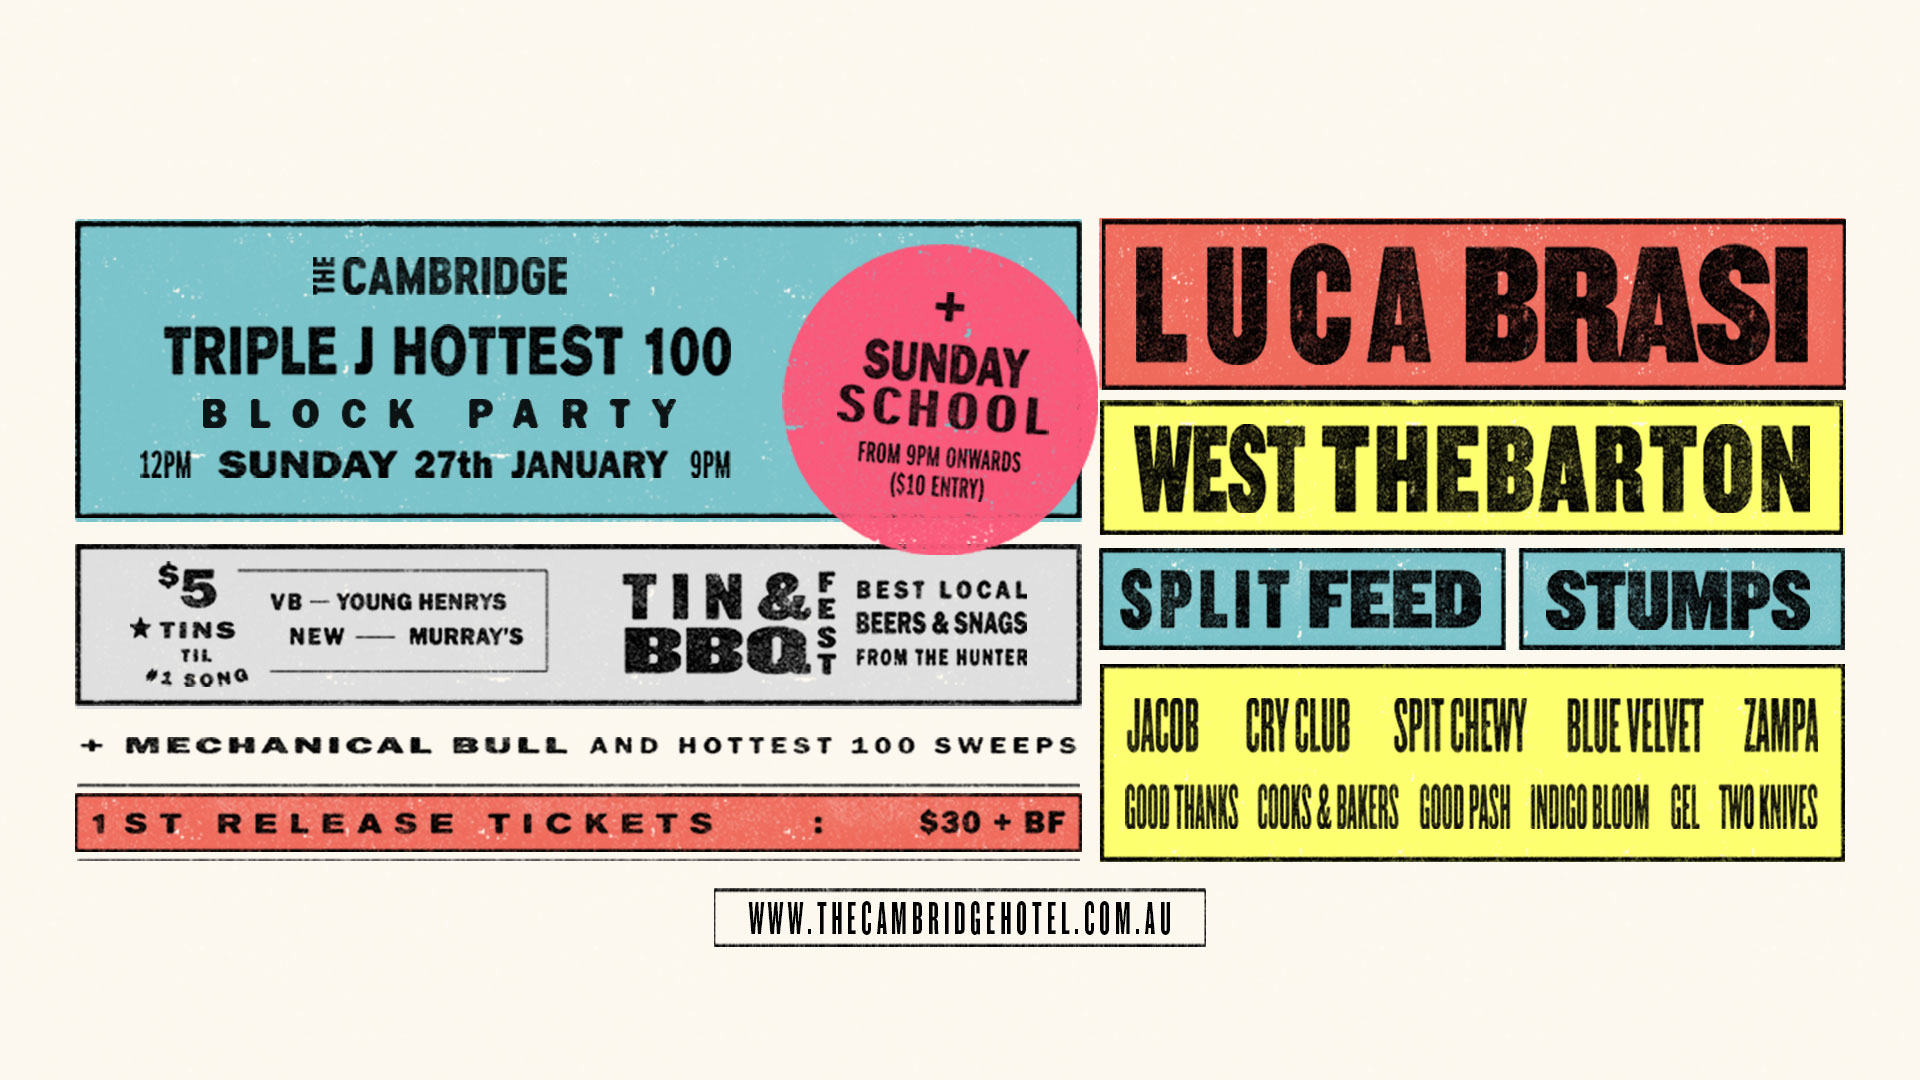 Tickets for Hottest 100 Block Party ft. Luca Brasi in Newcastle from Ticketbooth